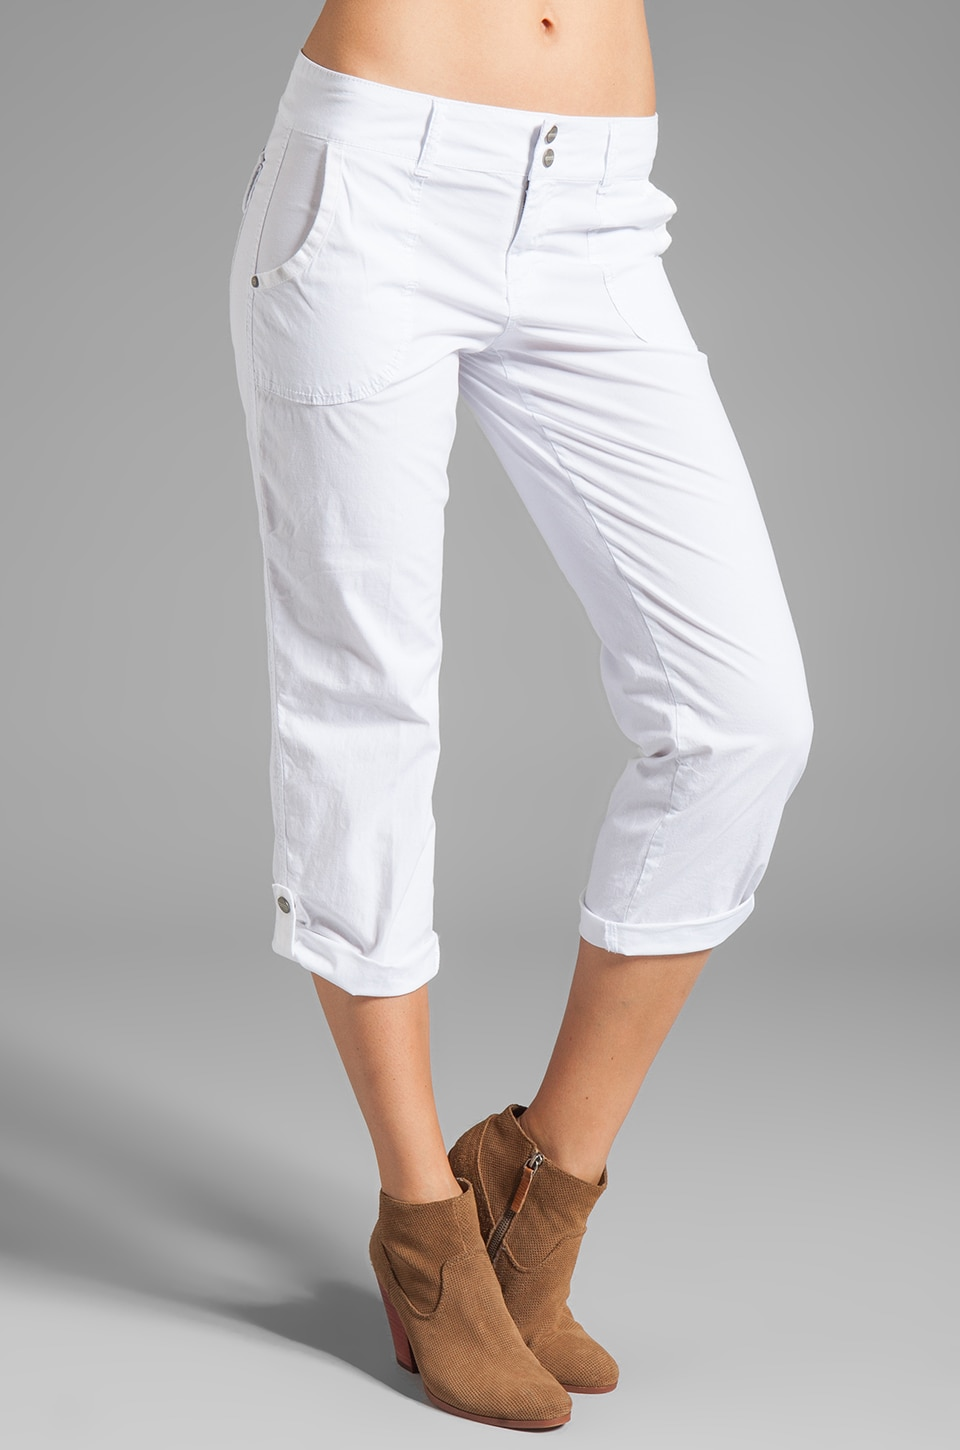 Sanctuary Sunday Poplin Crop in White